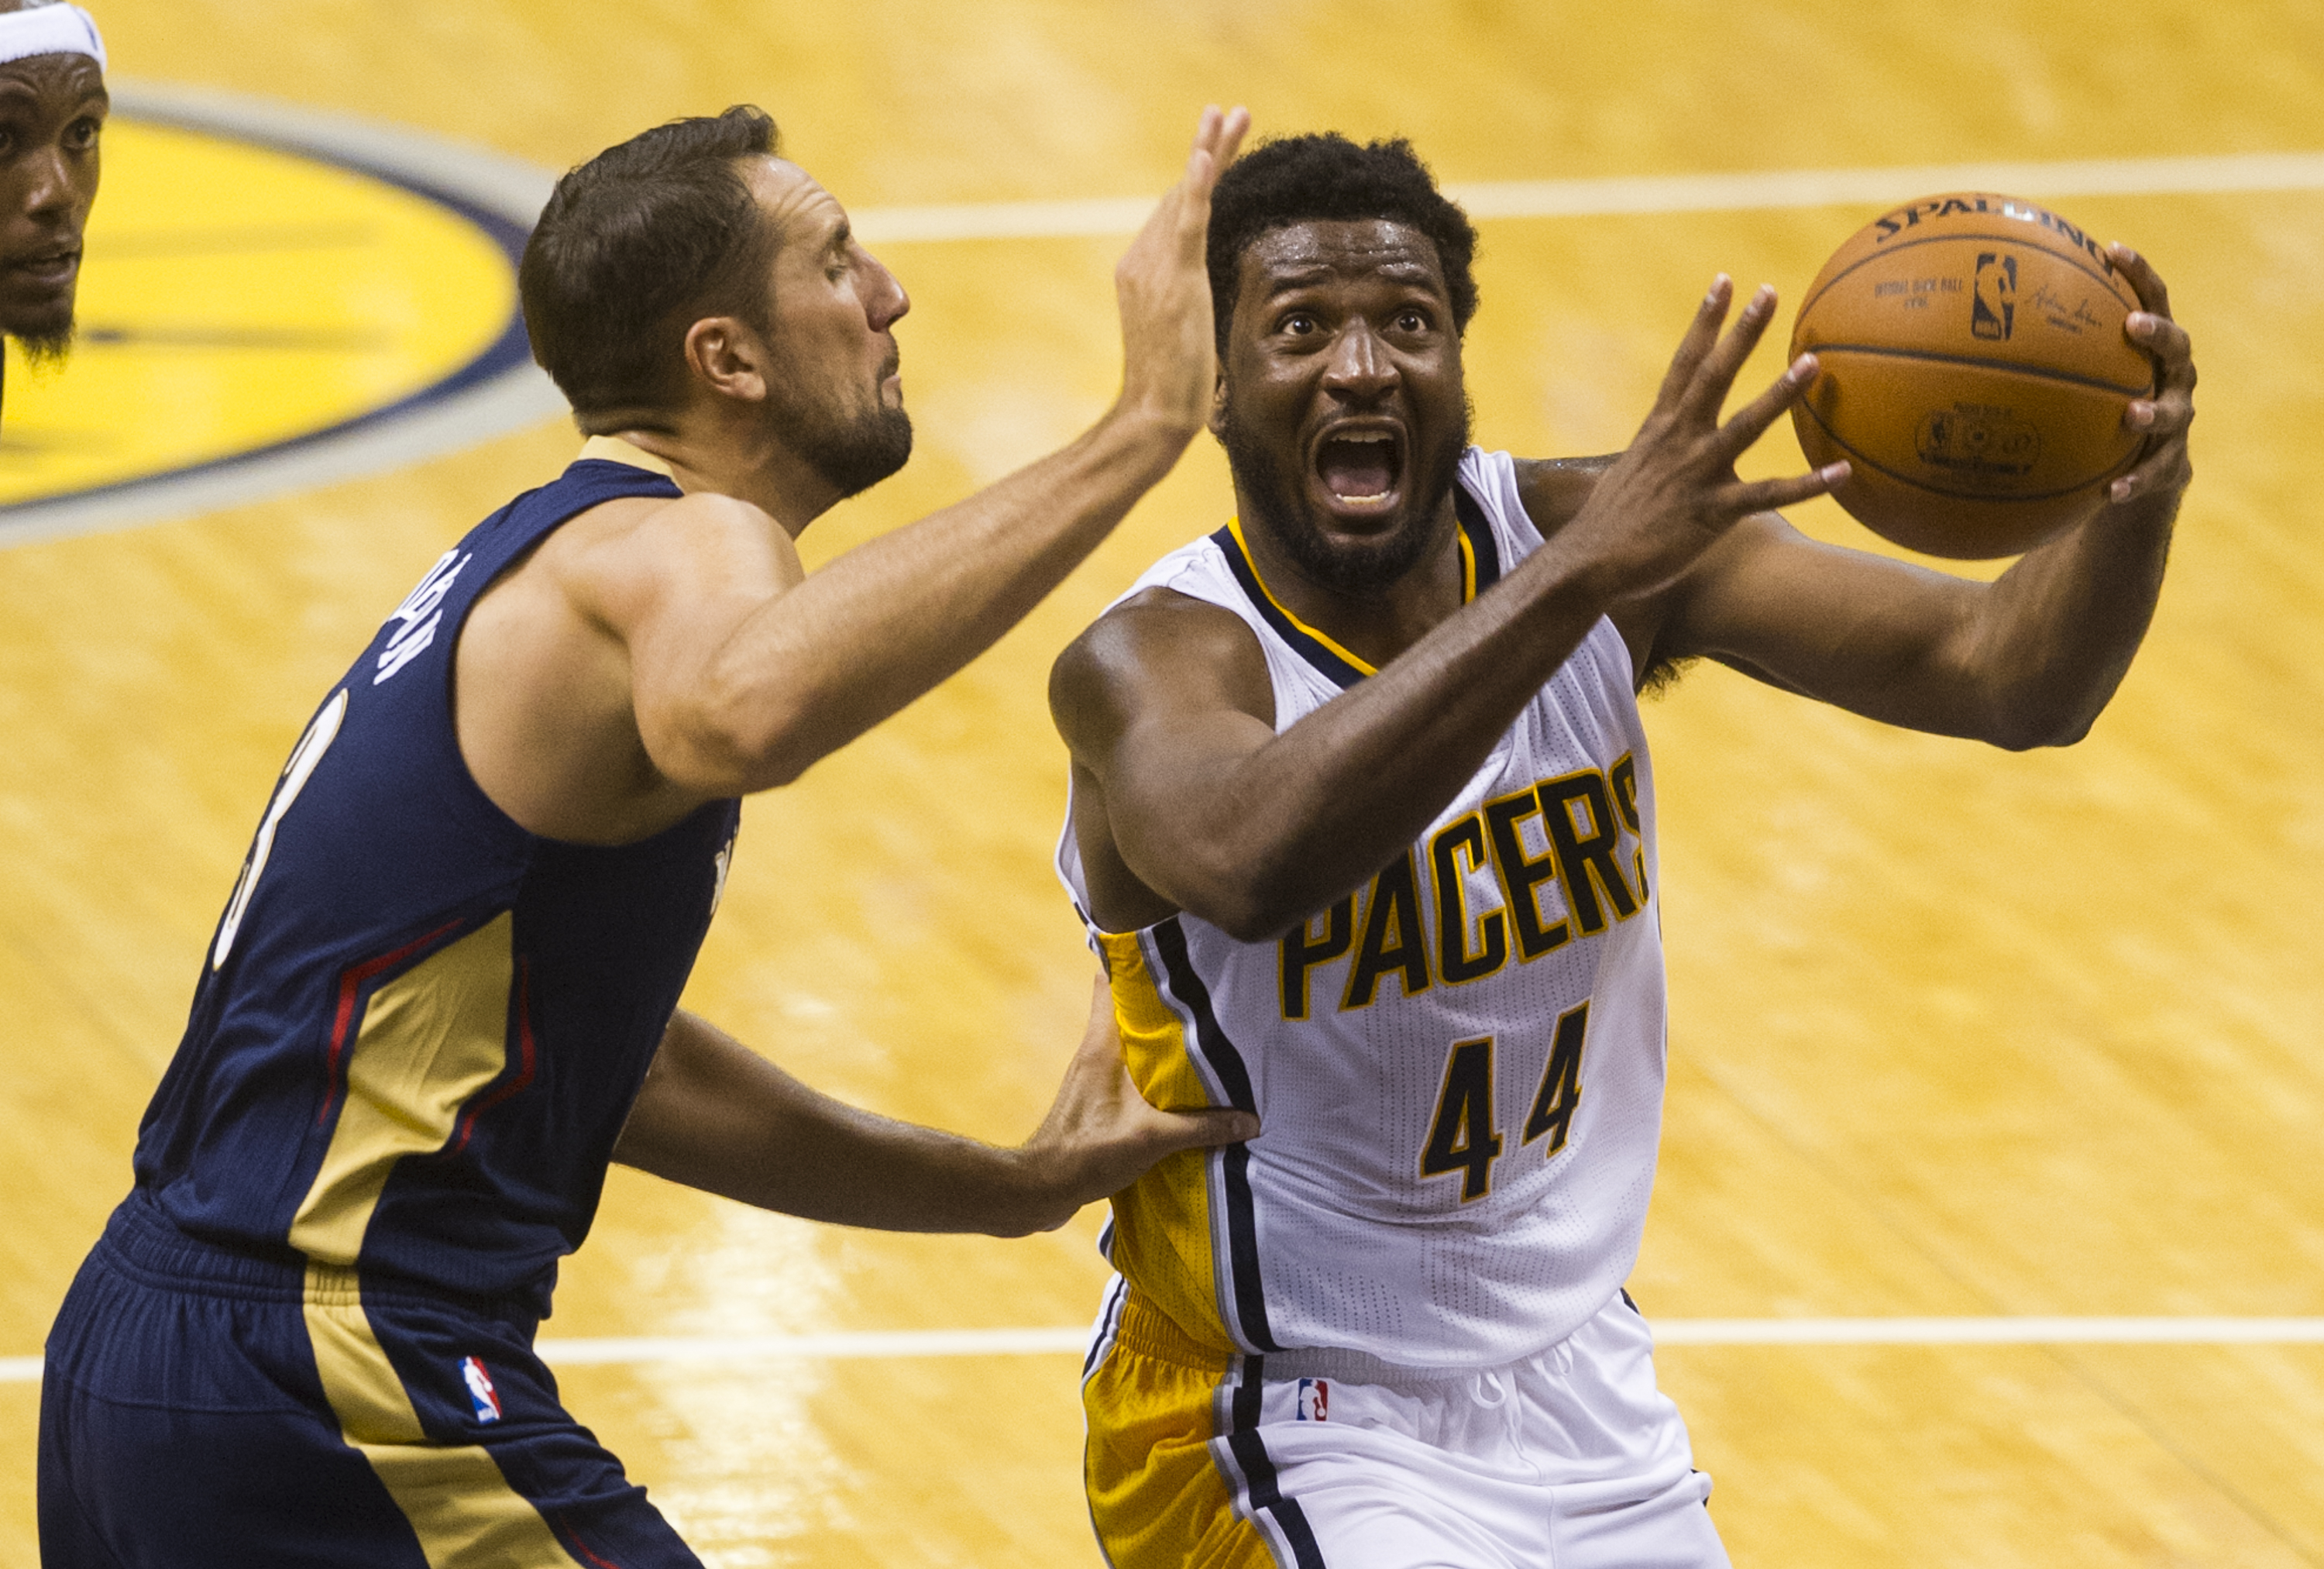 Indiana Pacers' Solomon Hill (44) drives the ball to the basket as he's defended by New Orleans Pelicans' Ryan Anderson (33) during the second half of a preseason NBA basketball game Saturday, Oct. 3, 2015, in Indianapolis. The Pelicans won 110-105. (AP P